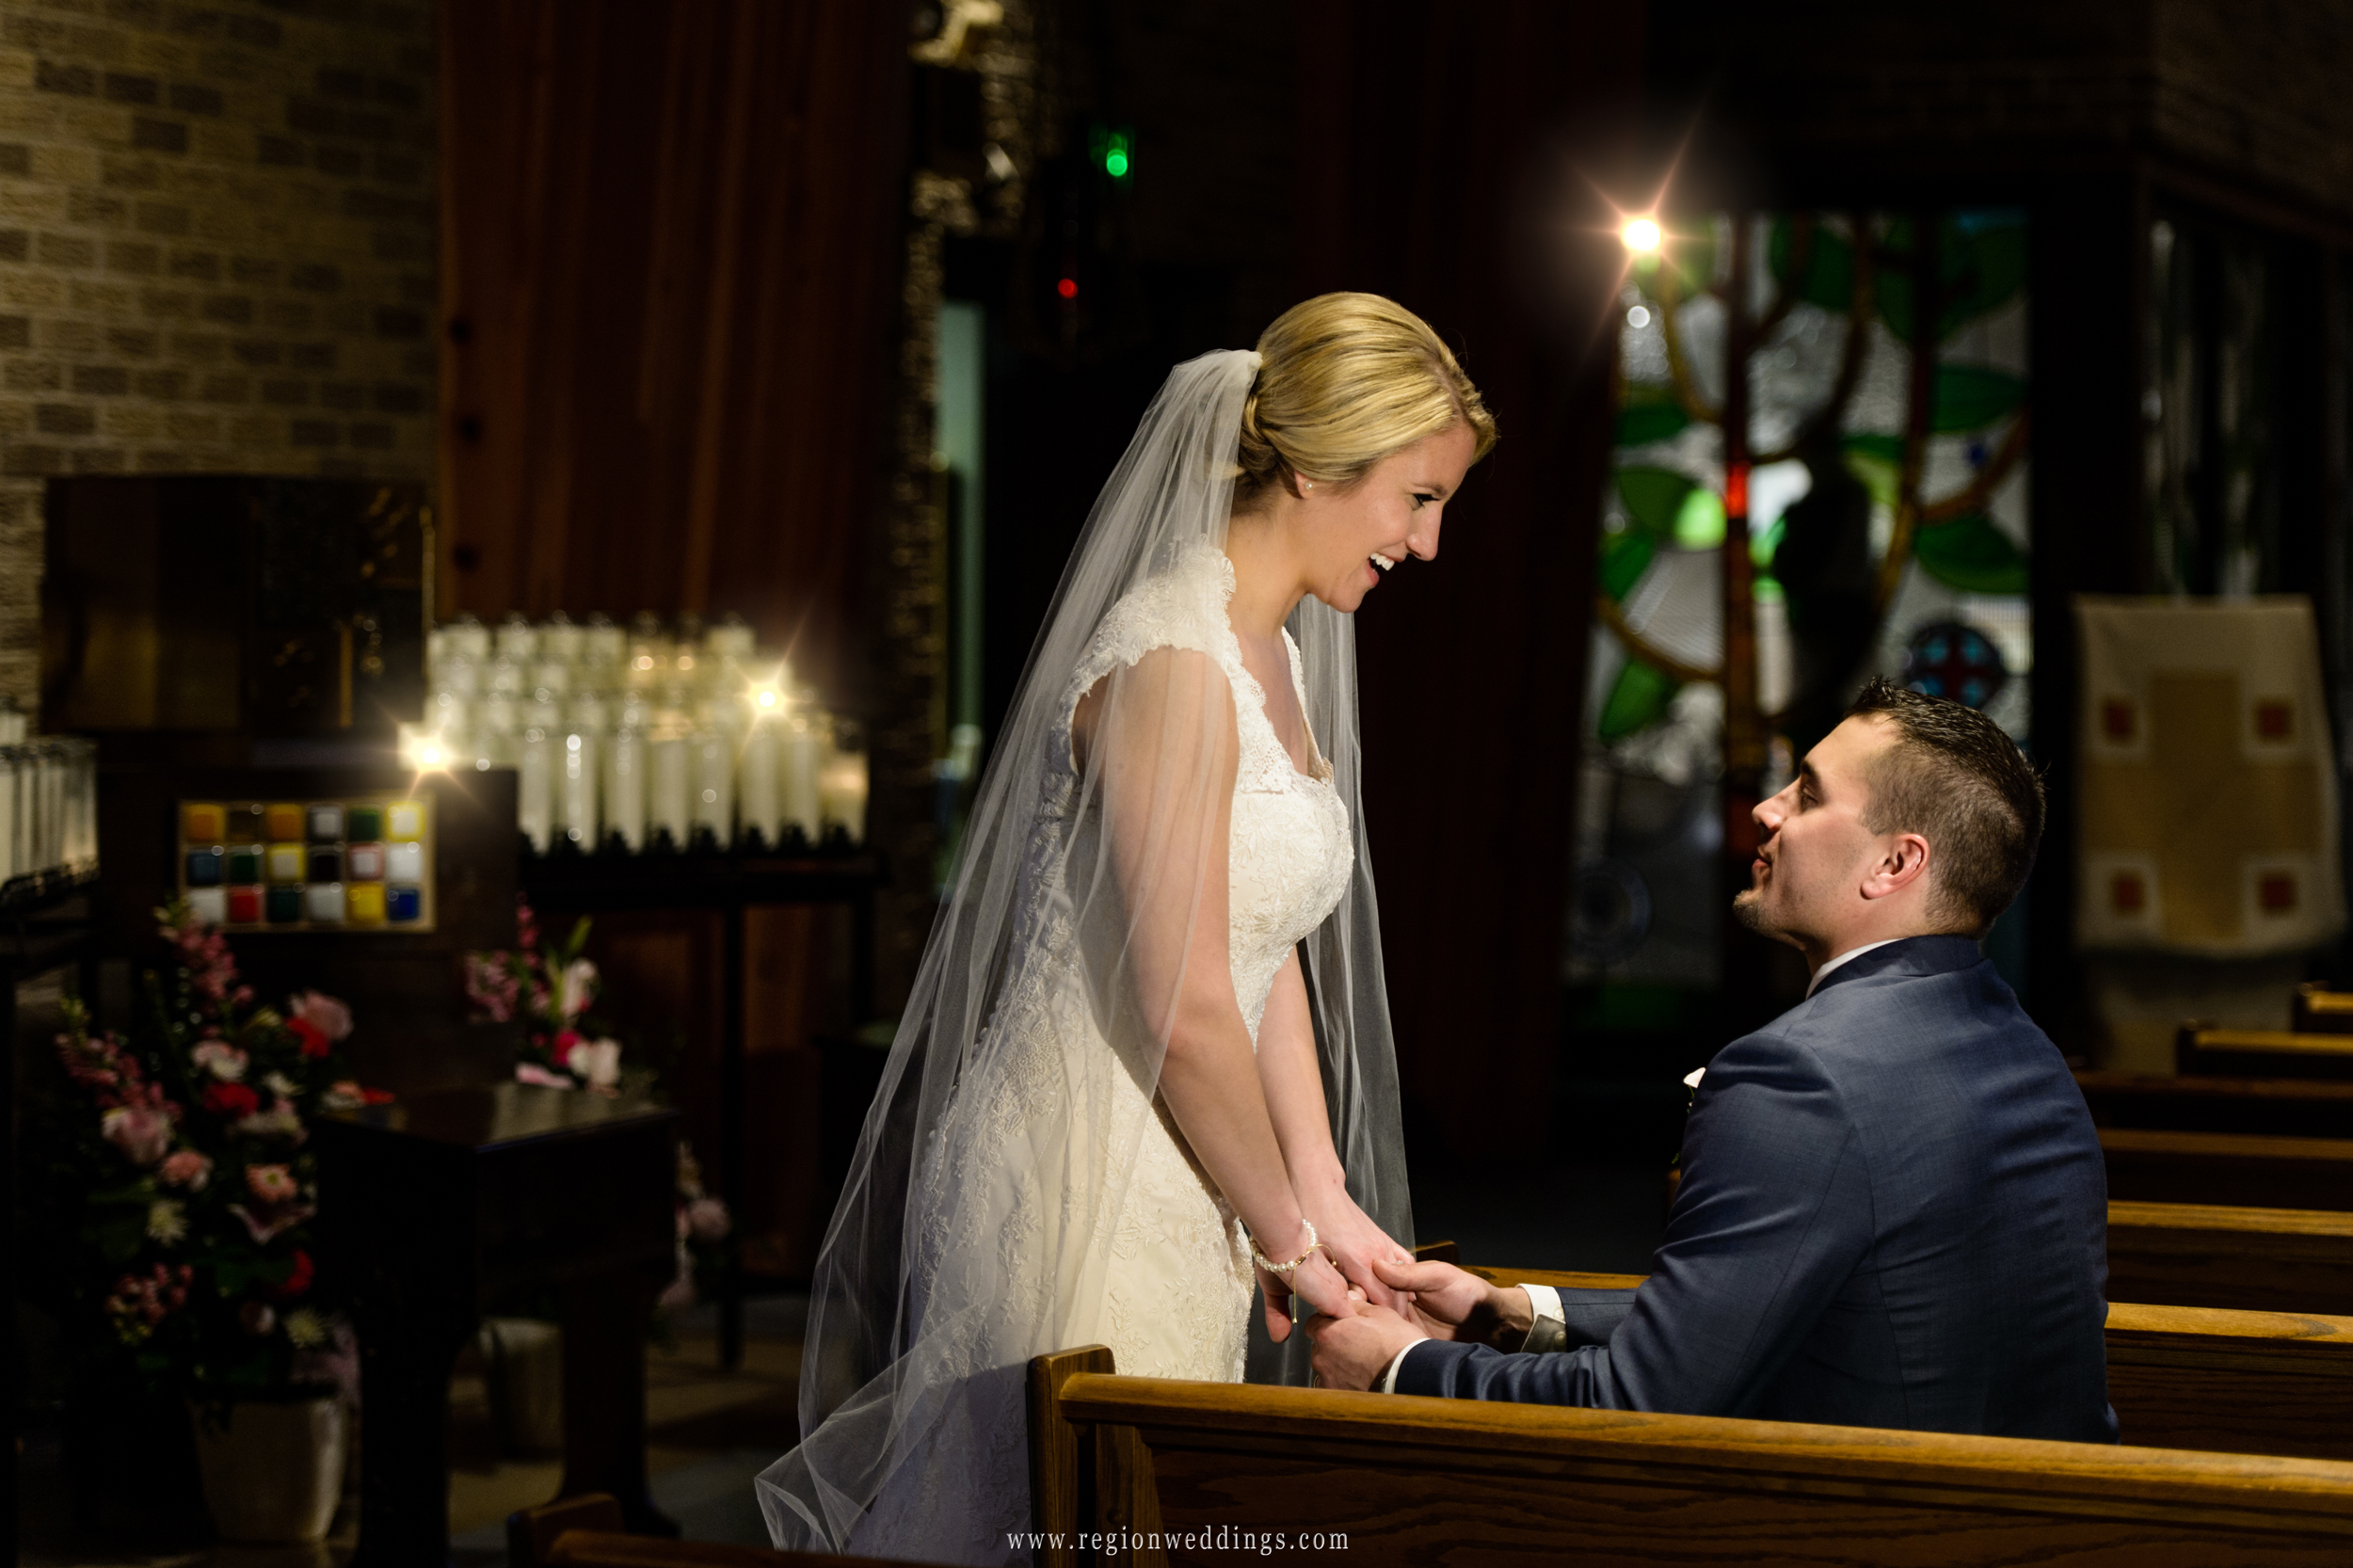 The bride and groom share a moment at St. Maria Goretti Church.